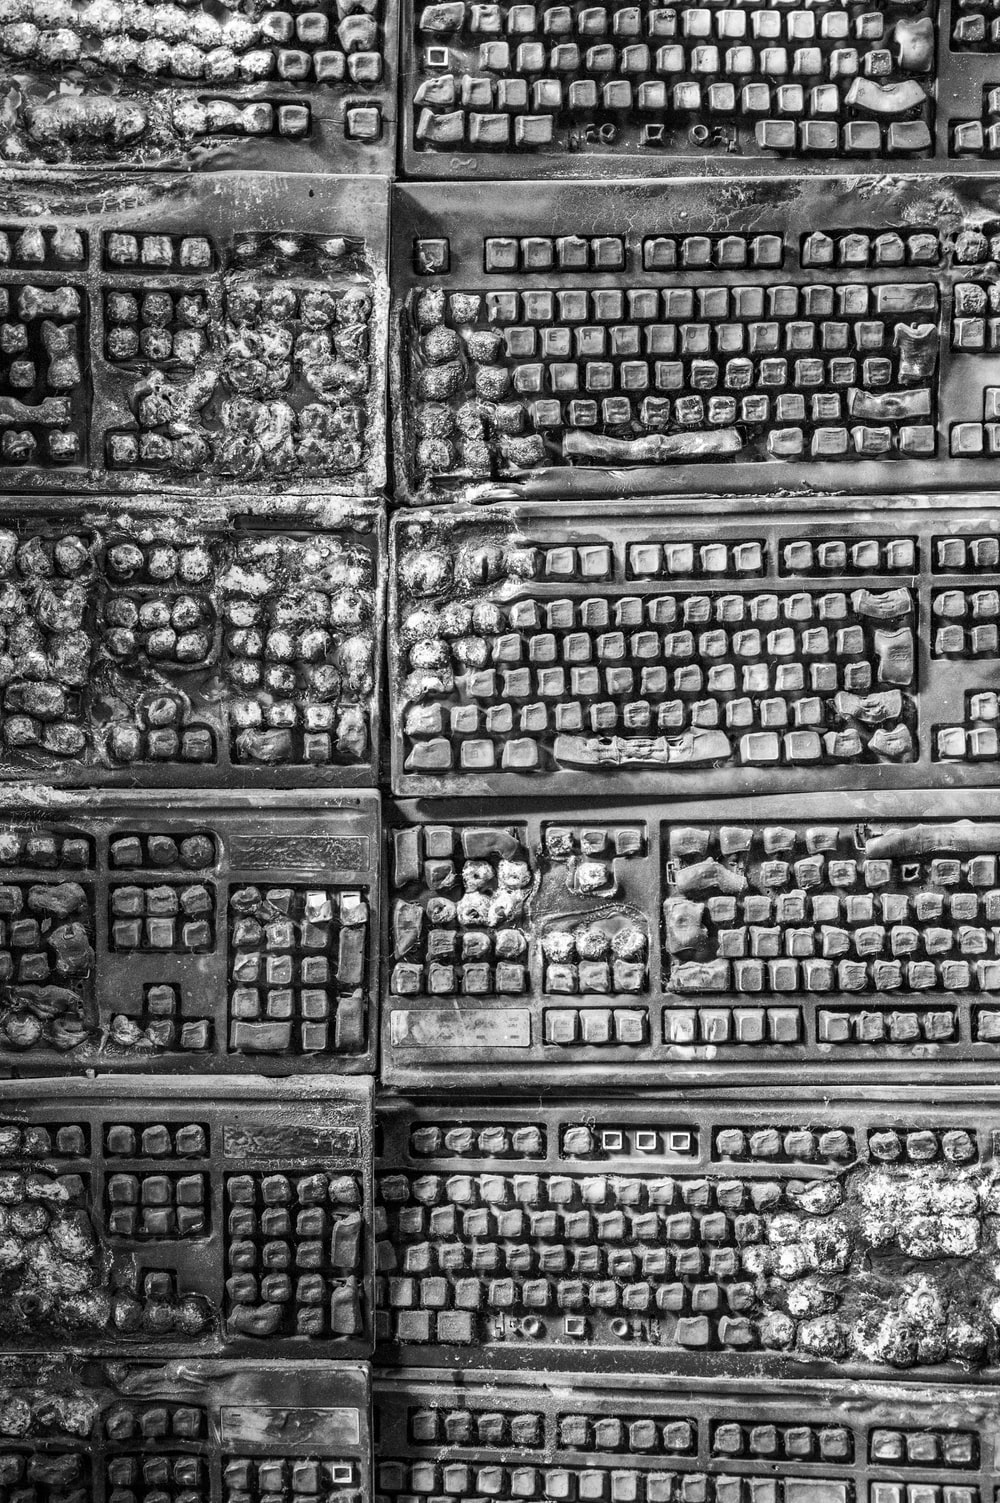 grayscale photo of burnt keyboards